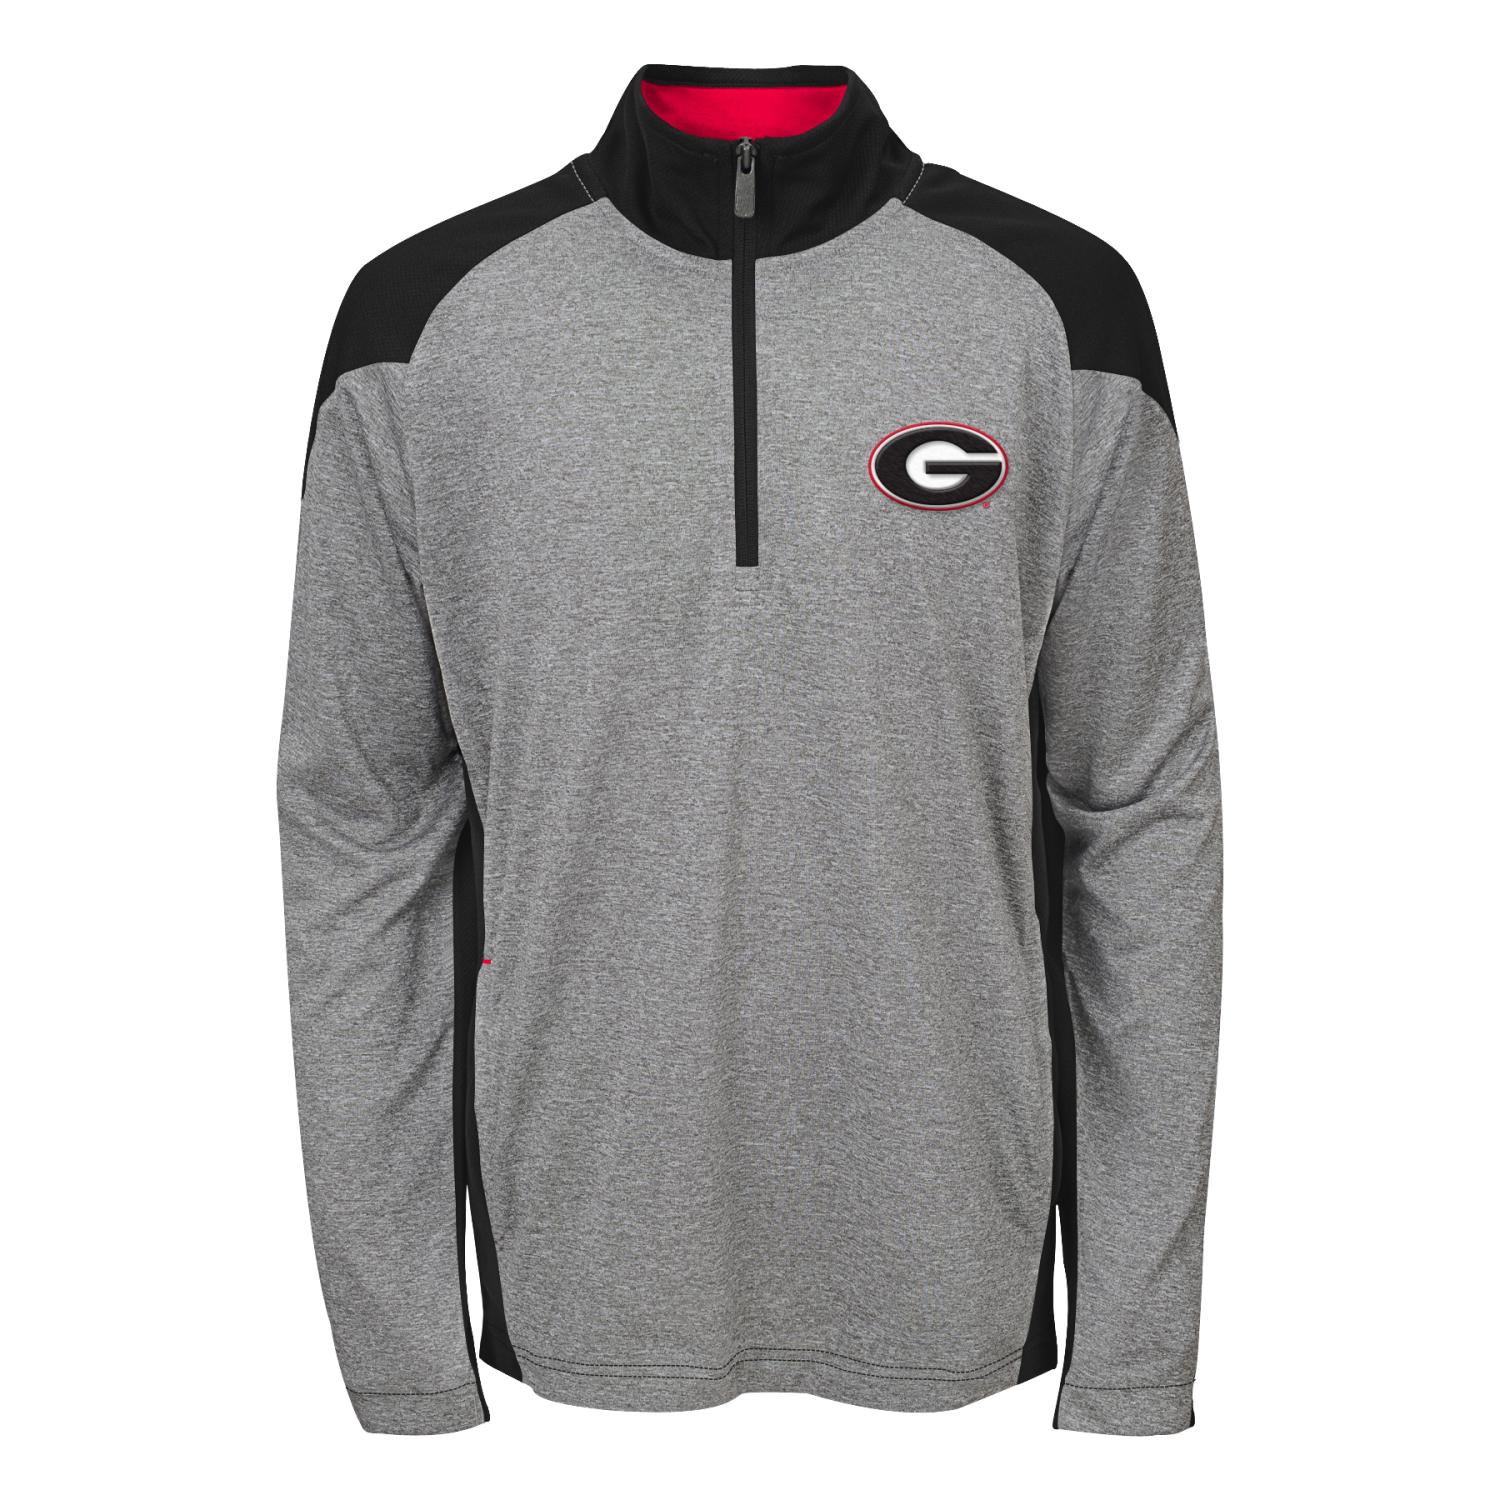 "Georgia Bulldogs NCAA ""Helix"" Men's 1 4 Zip Pullover Jacket by Gen2"